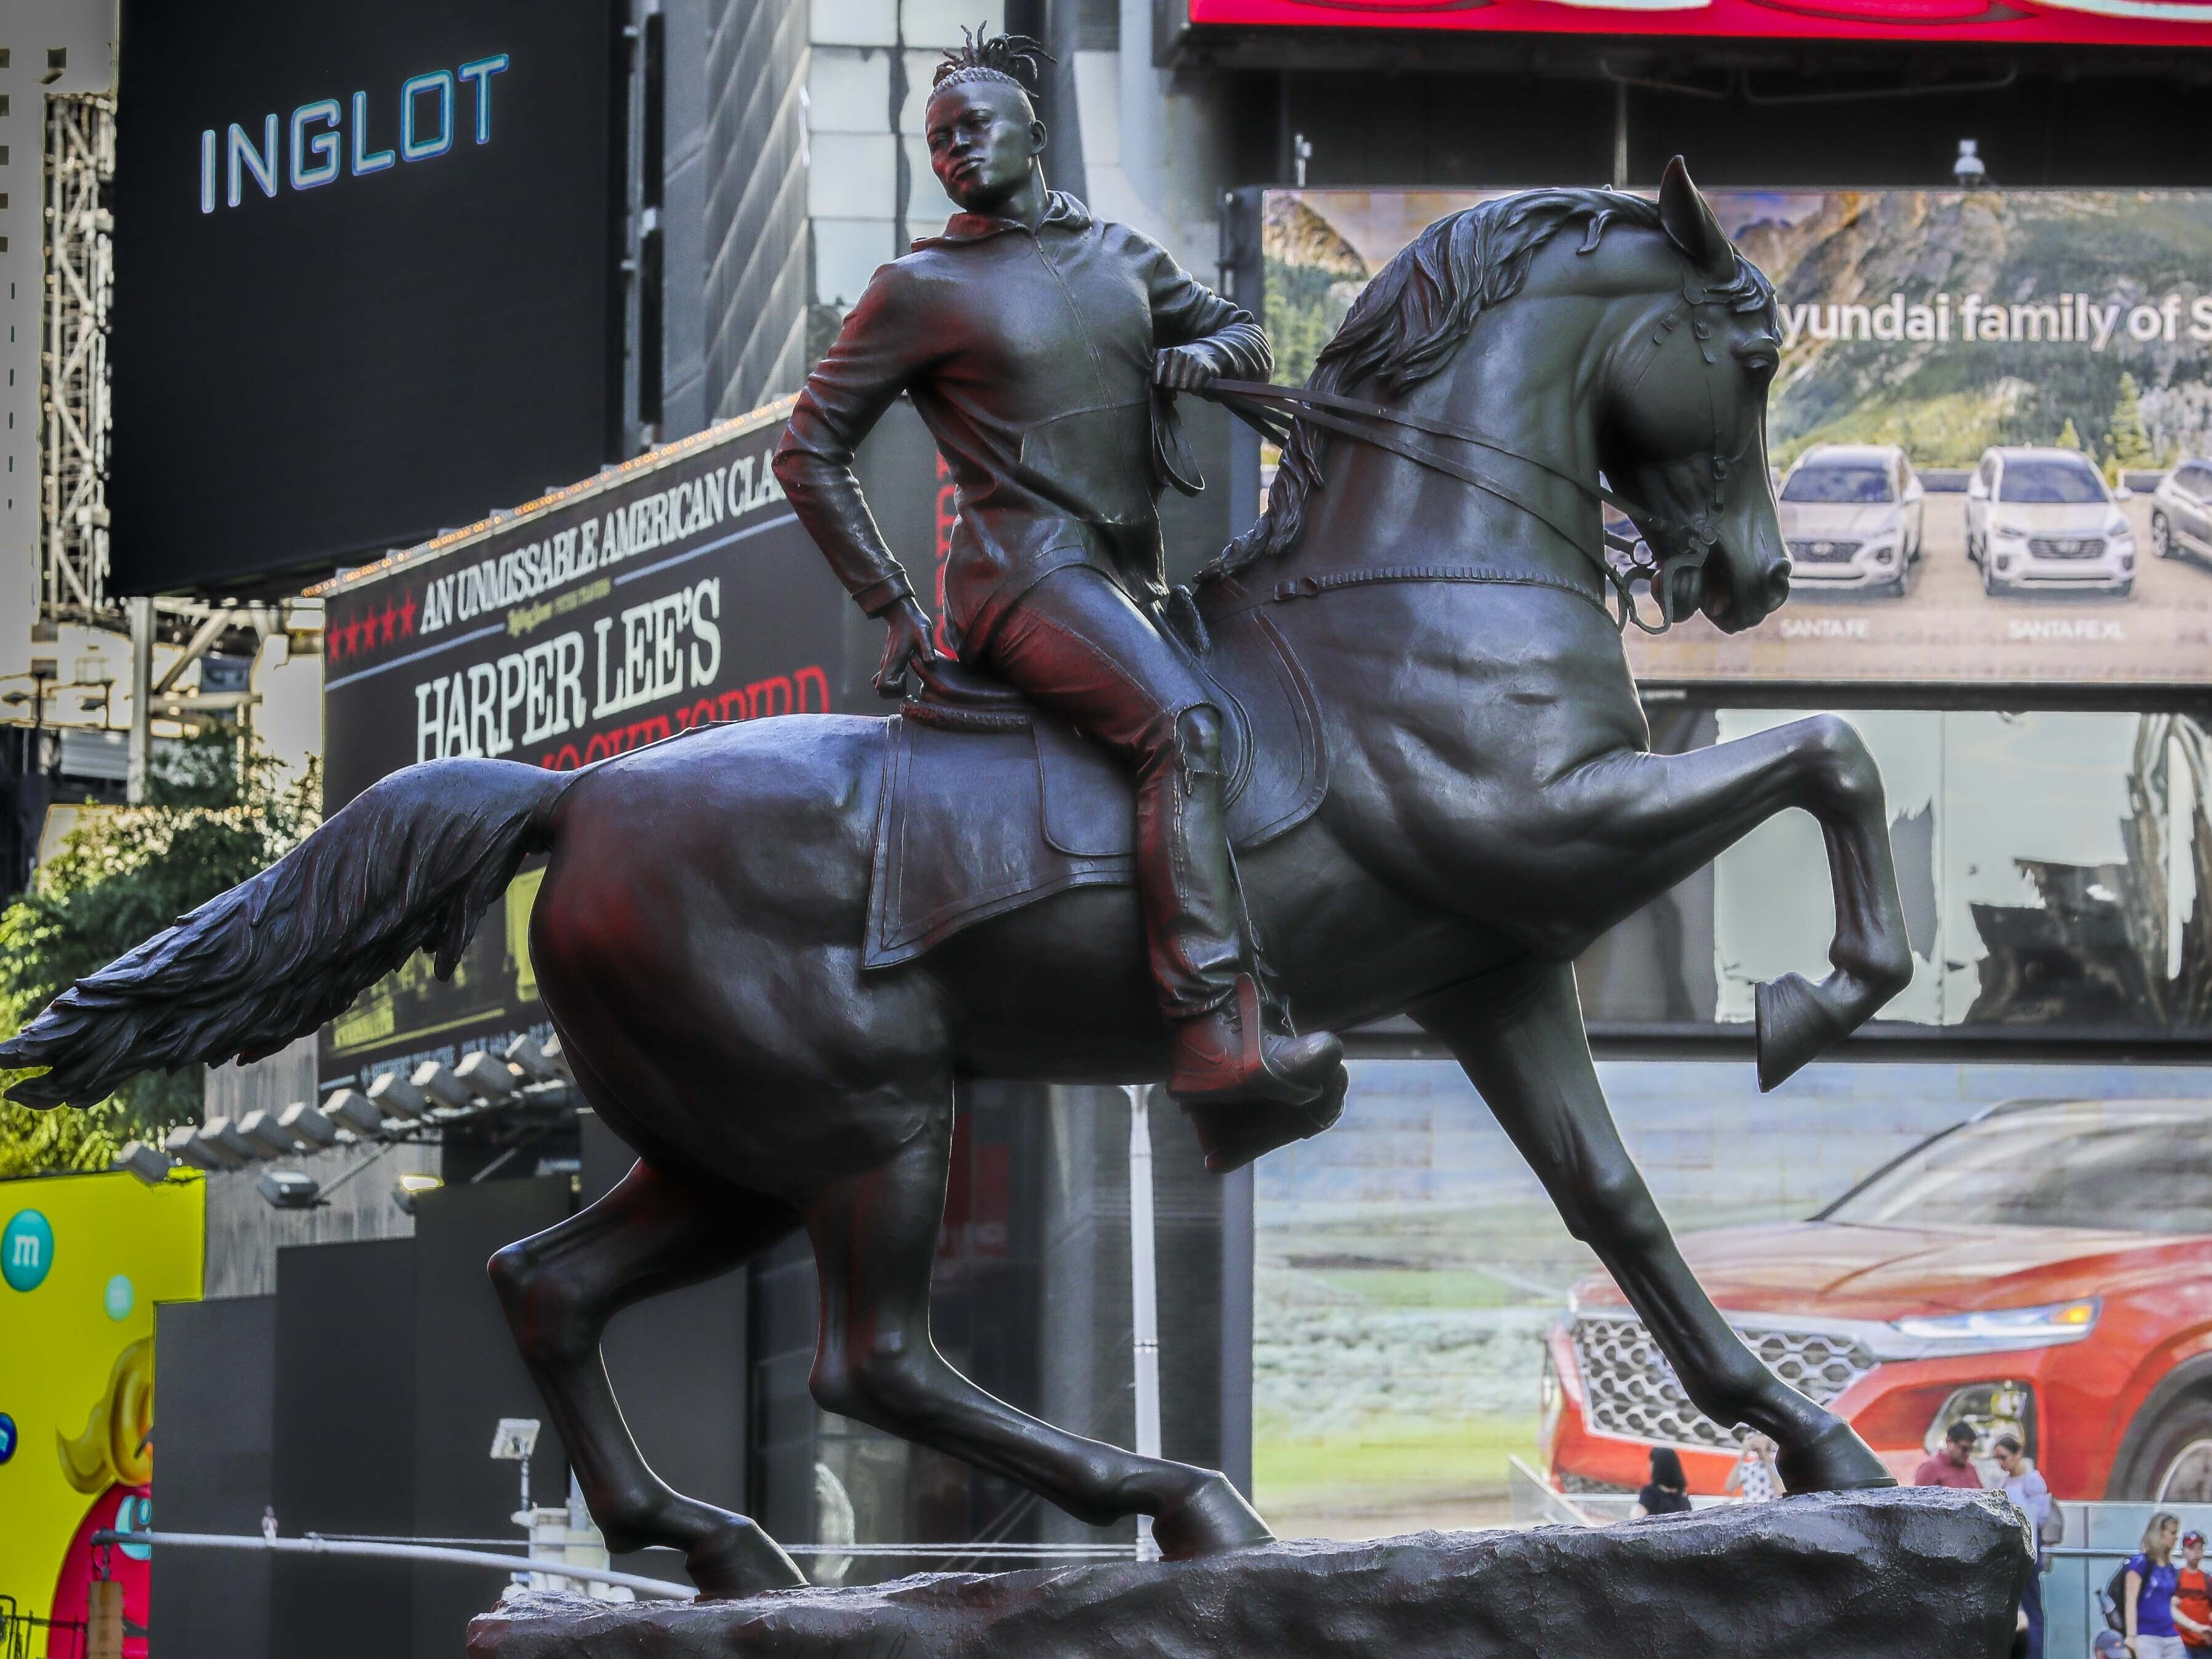 New Statue Unveiled In Response To Richmond's Confederate Monuments